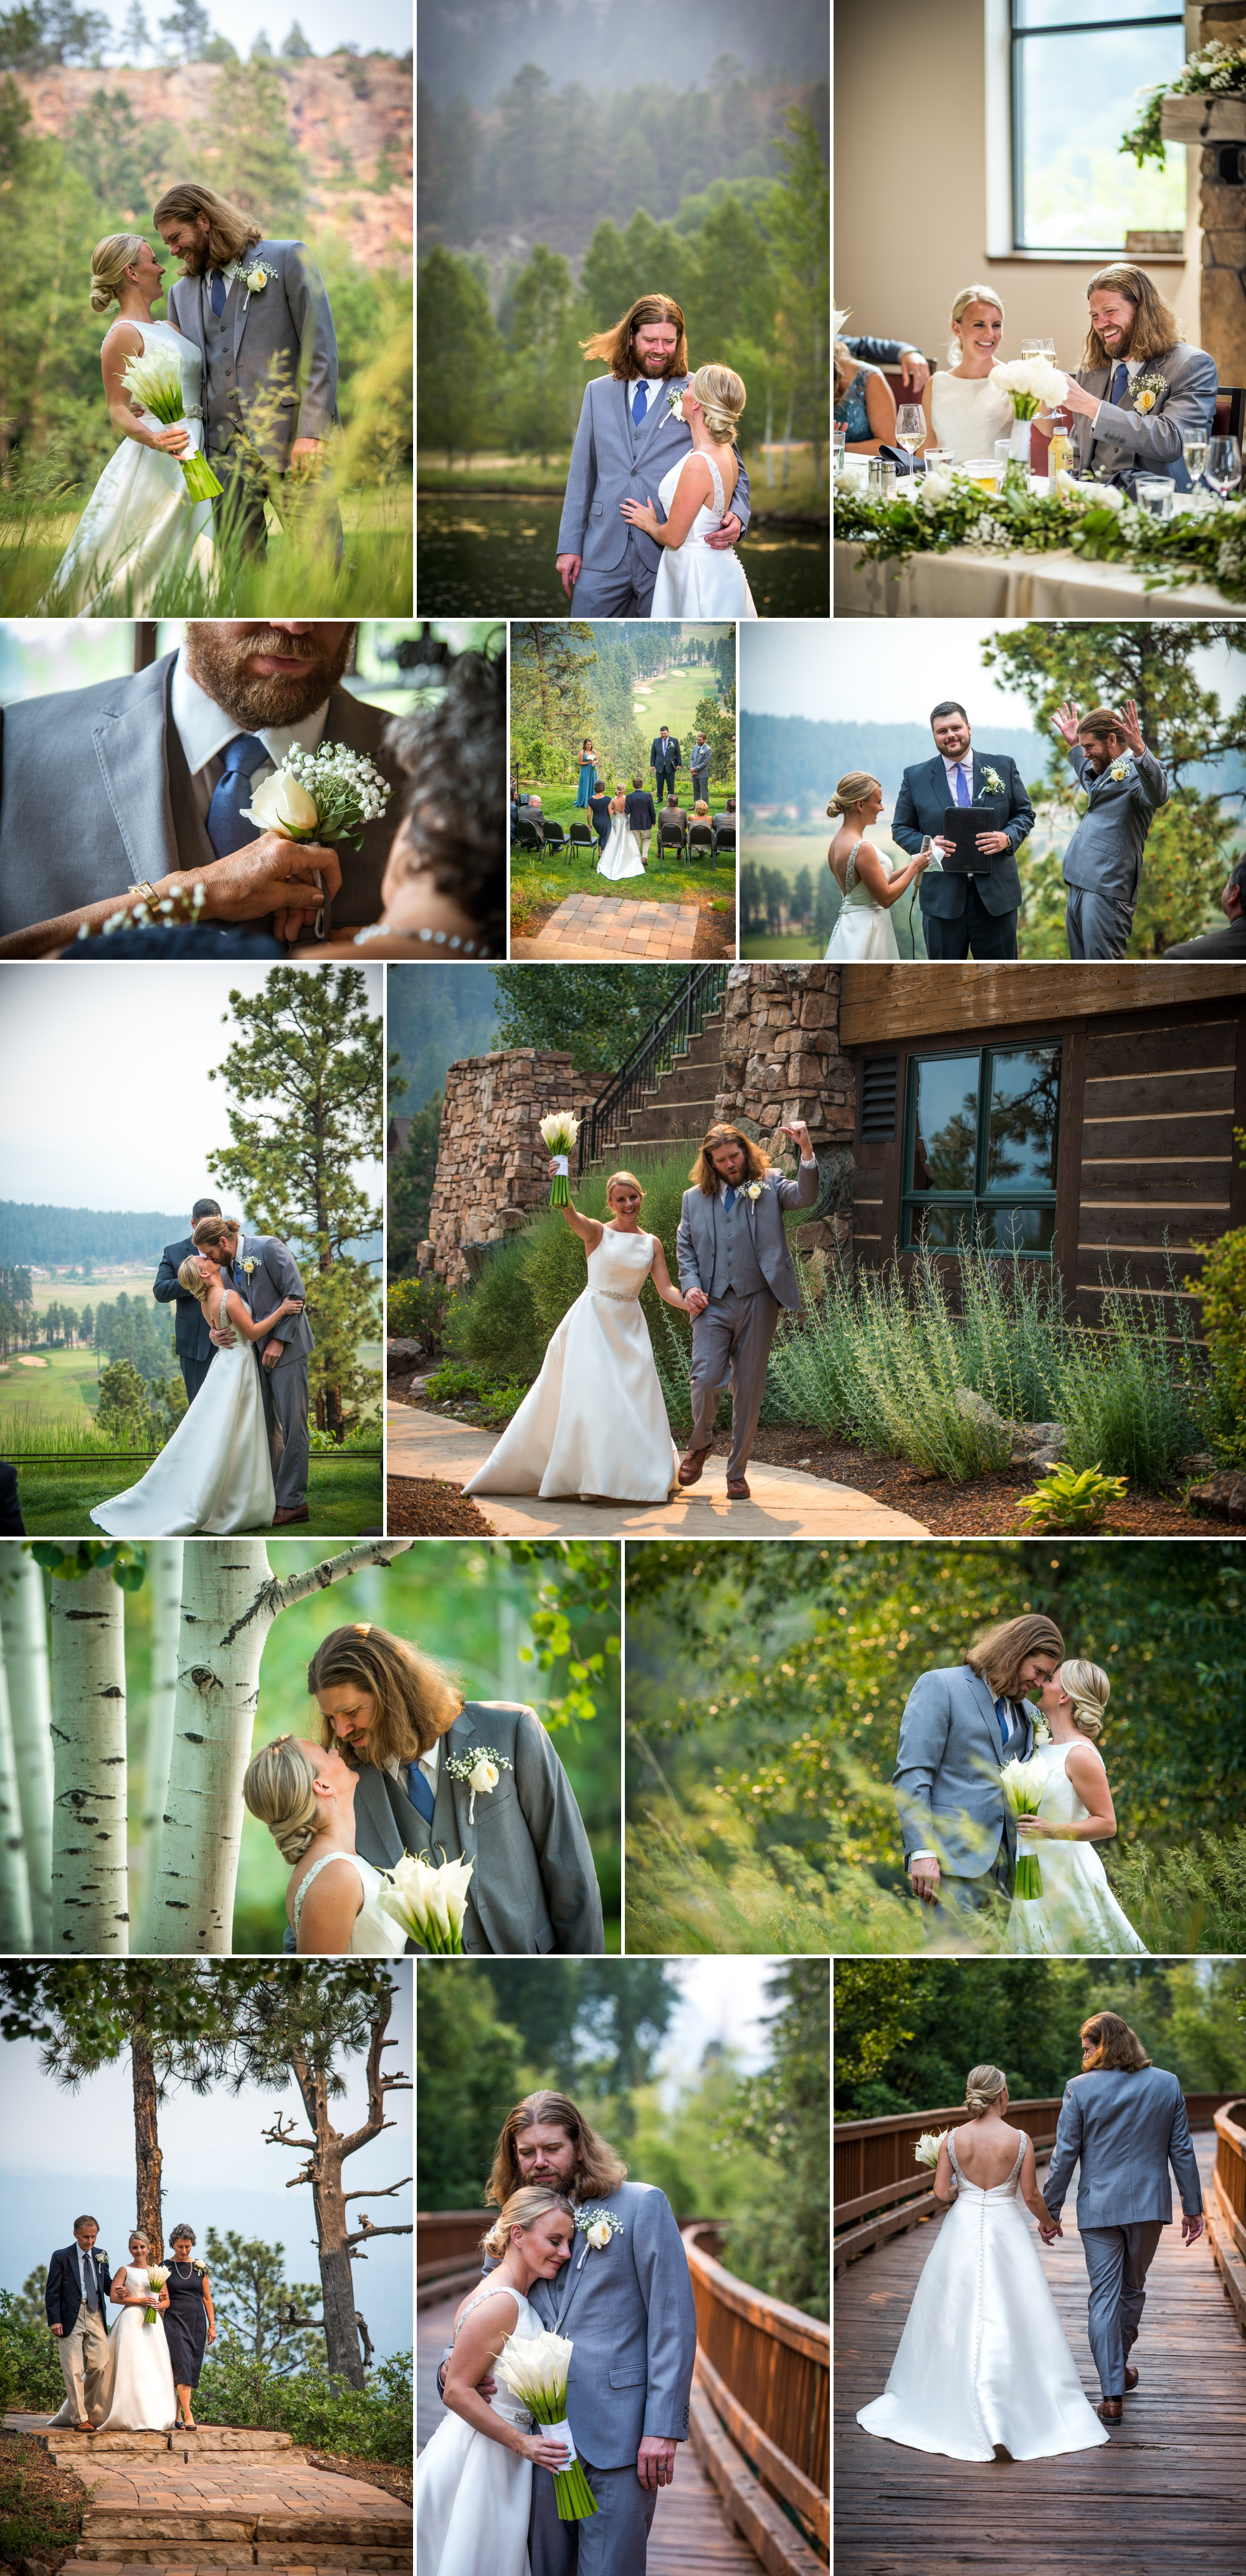 wedding pictures by Allison Ragsdale Photography in Durango Colorado